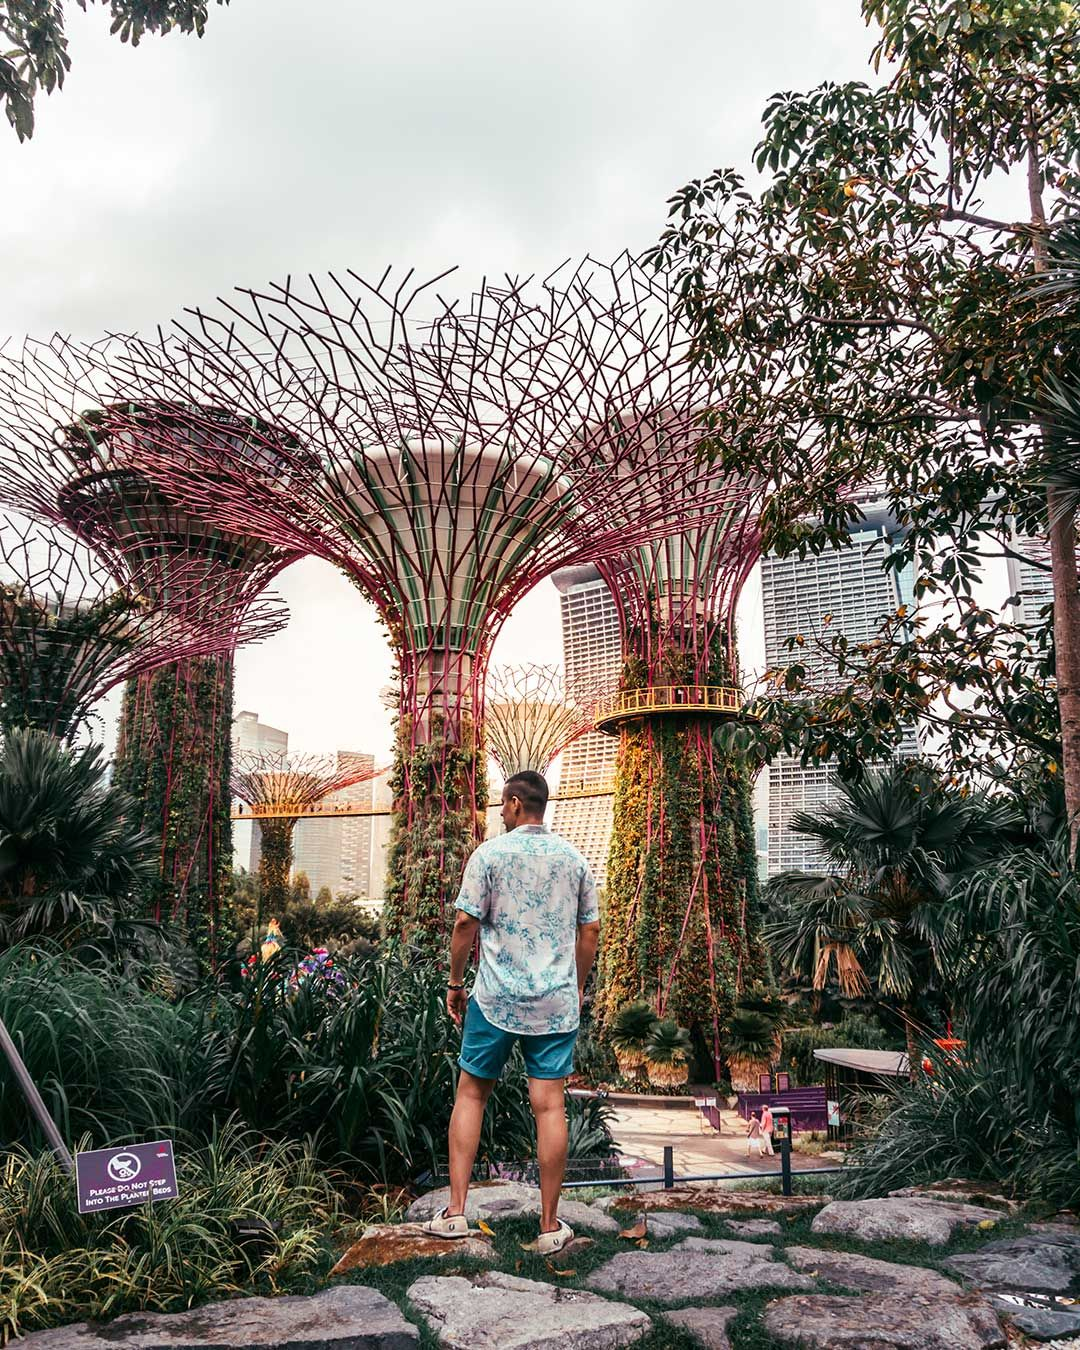 7ef822b71549a280104cade37cc41724 - Free Things To Do At Gardens By The Bay